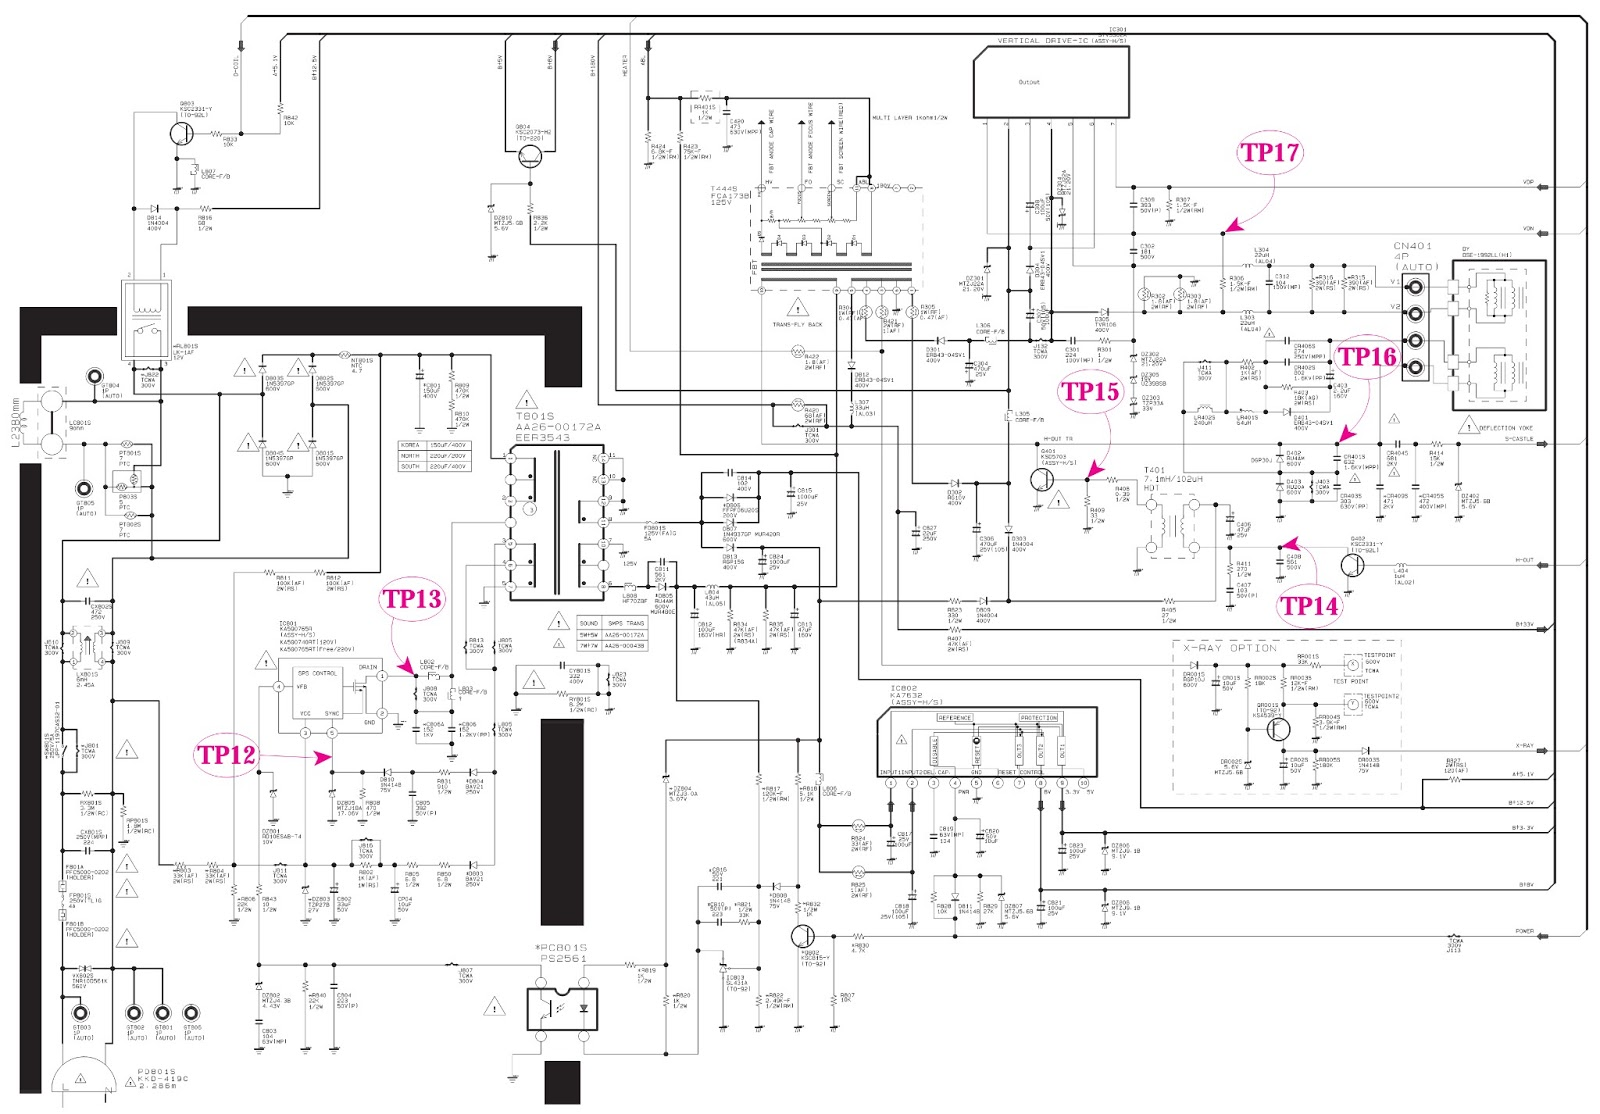 POWER.bmp samsung txp2011 main power [smps] & micom schematic (circuit